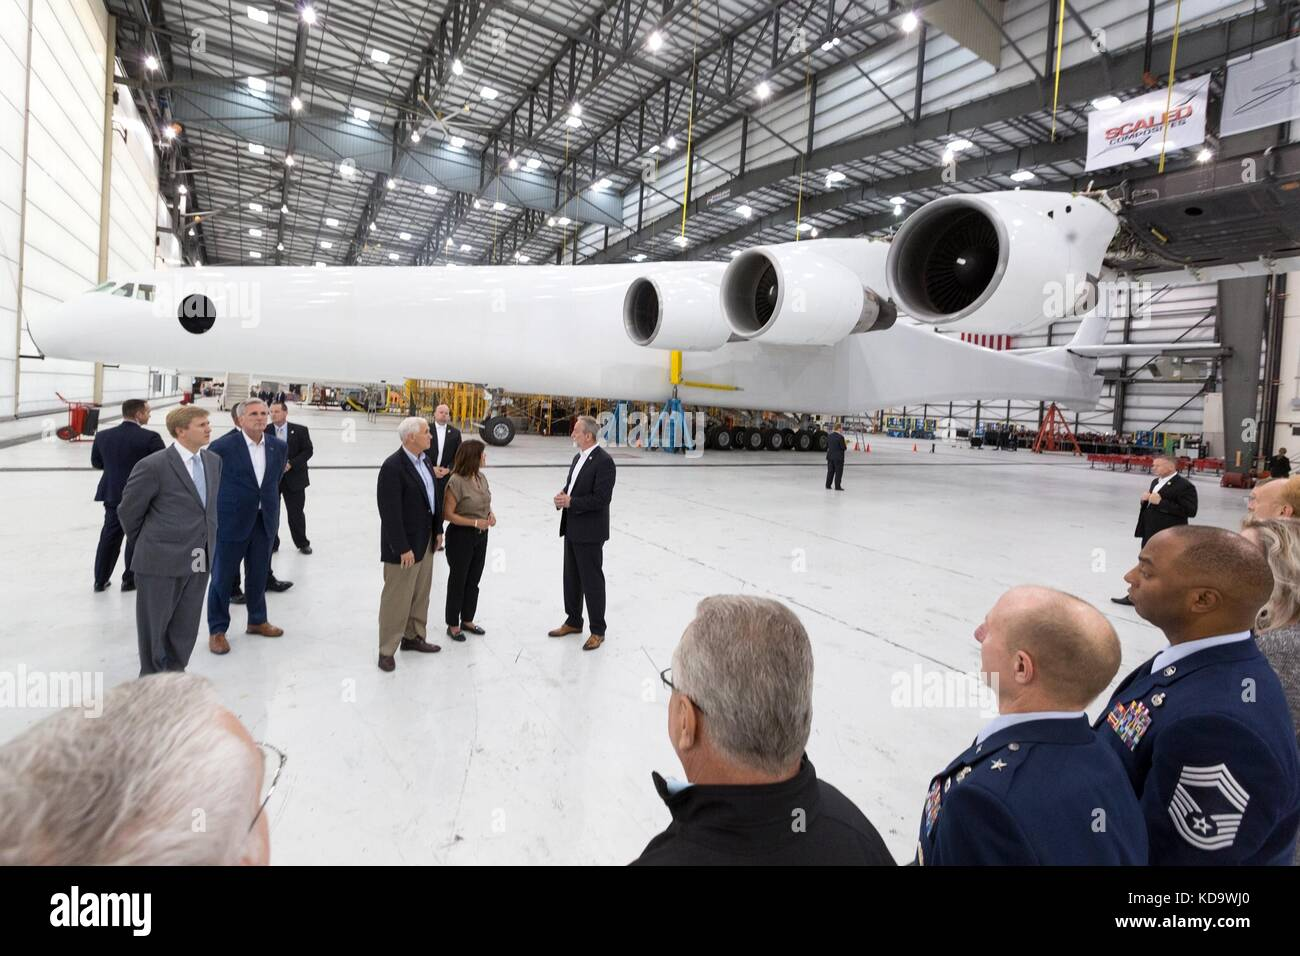 U.S. Vice President Mike Pence and his wife Karen Pence tour the Stratolauch Systems hangar at the Mojave Air and - Stock Image